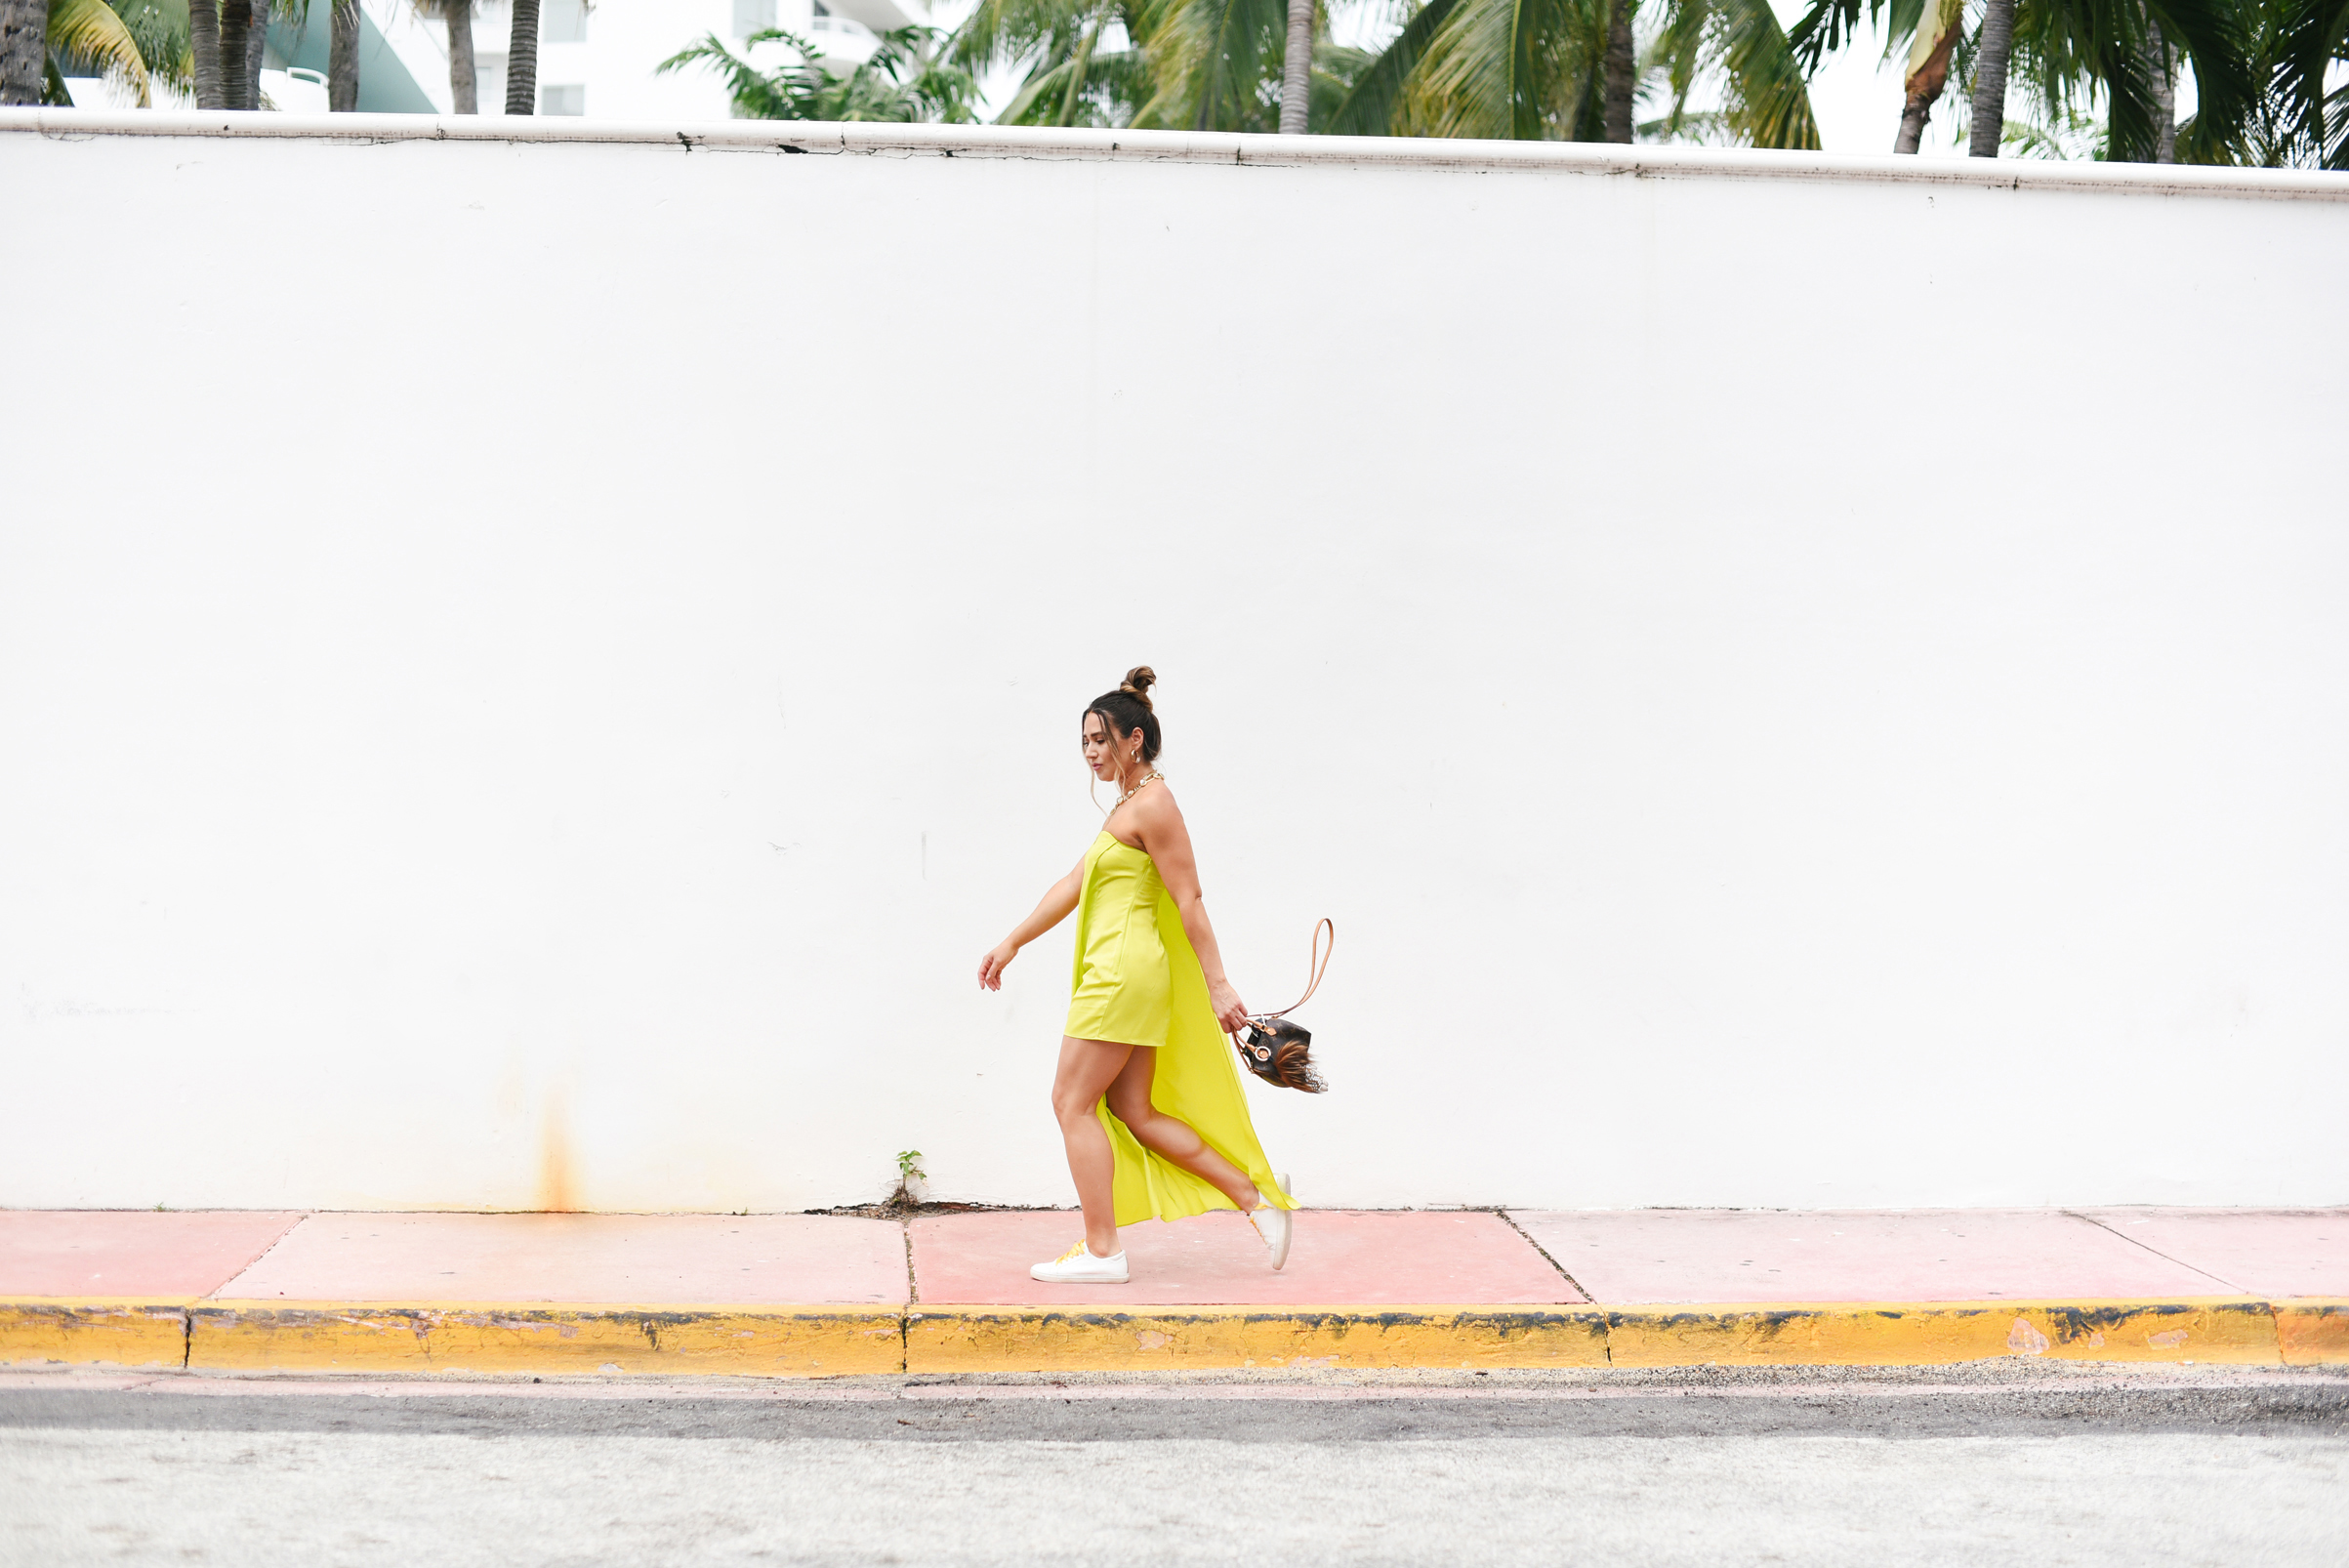 neon-green-dress-trend-sneakers-bright-laces-miami-swim-week-street-style-look